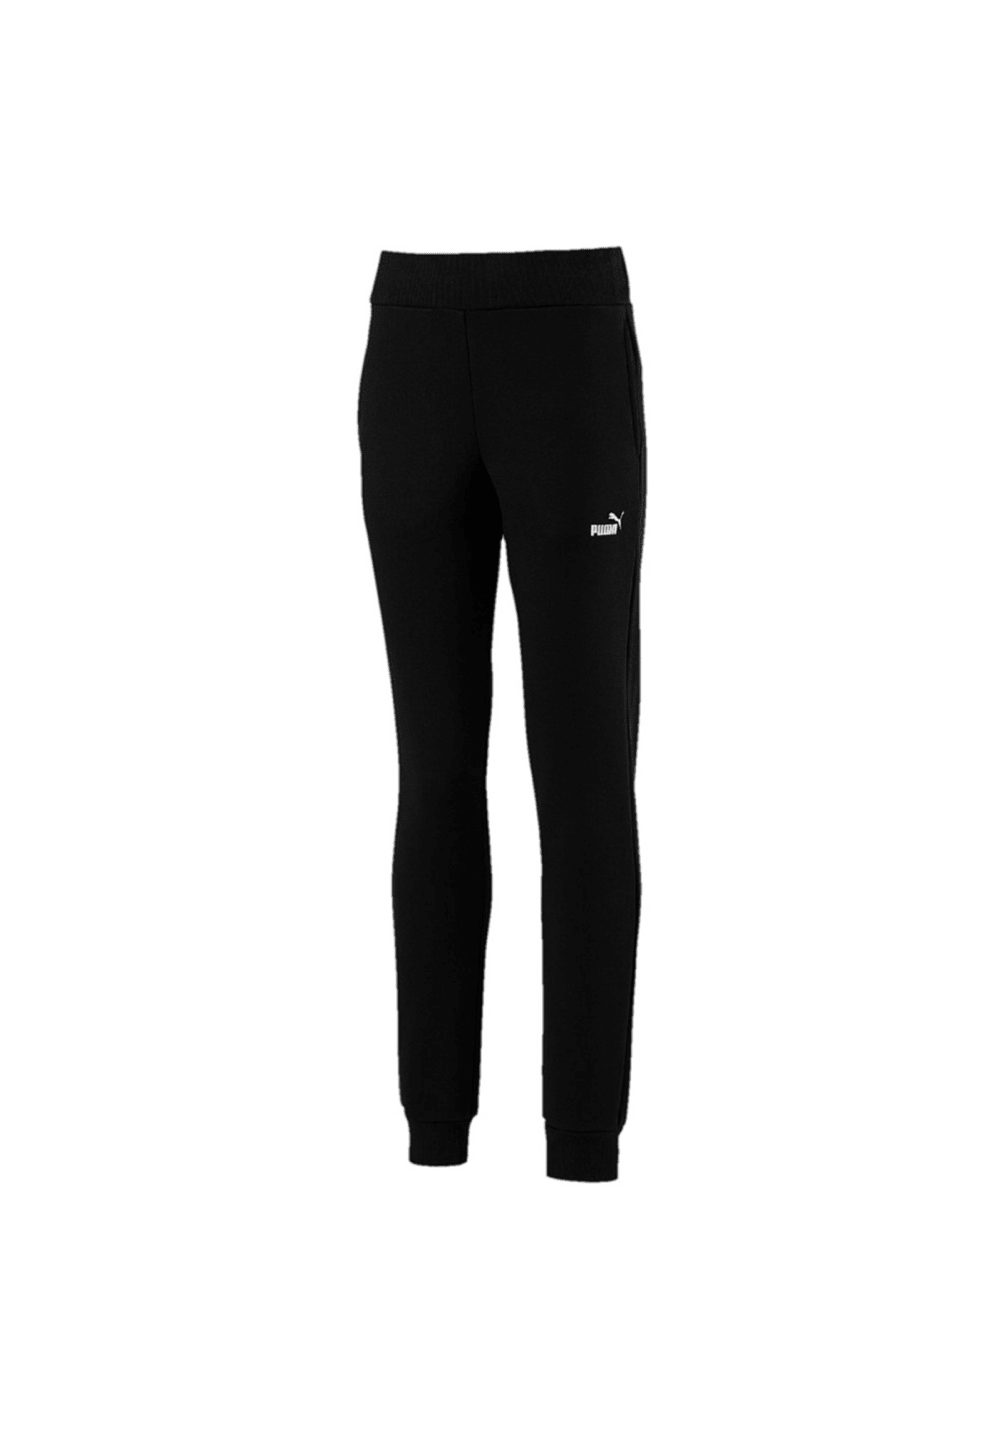 7cba3aeee1db This product is currently out of stock. Puma. Essential Sweat Pants FL ...